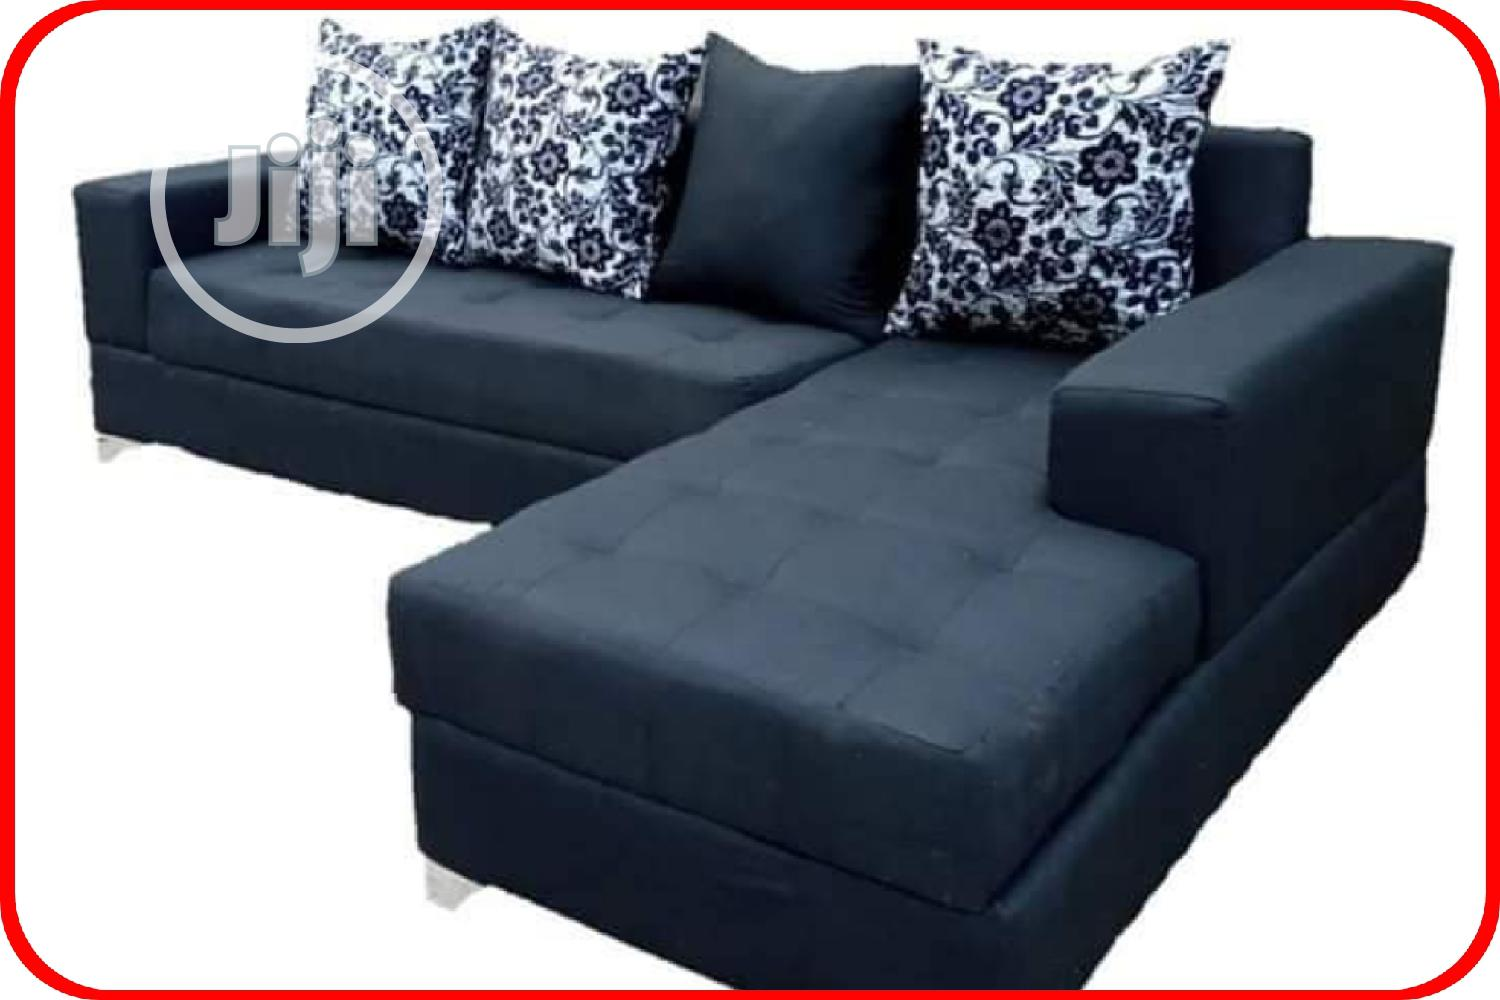 L- Shaped Sofa With Throw Pillows